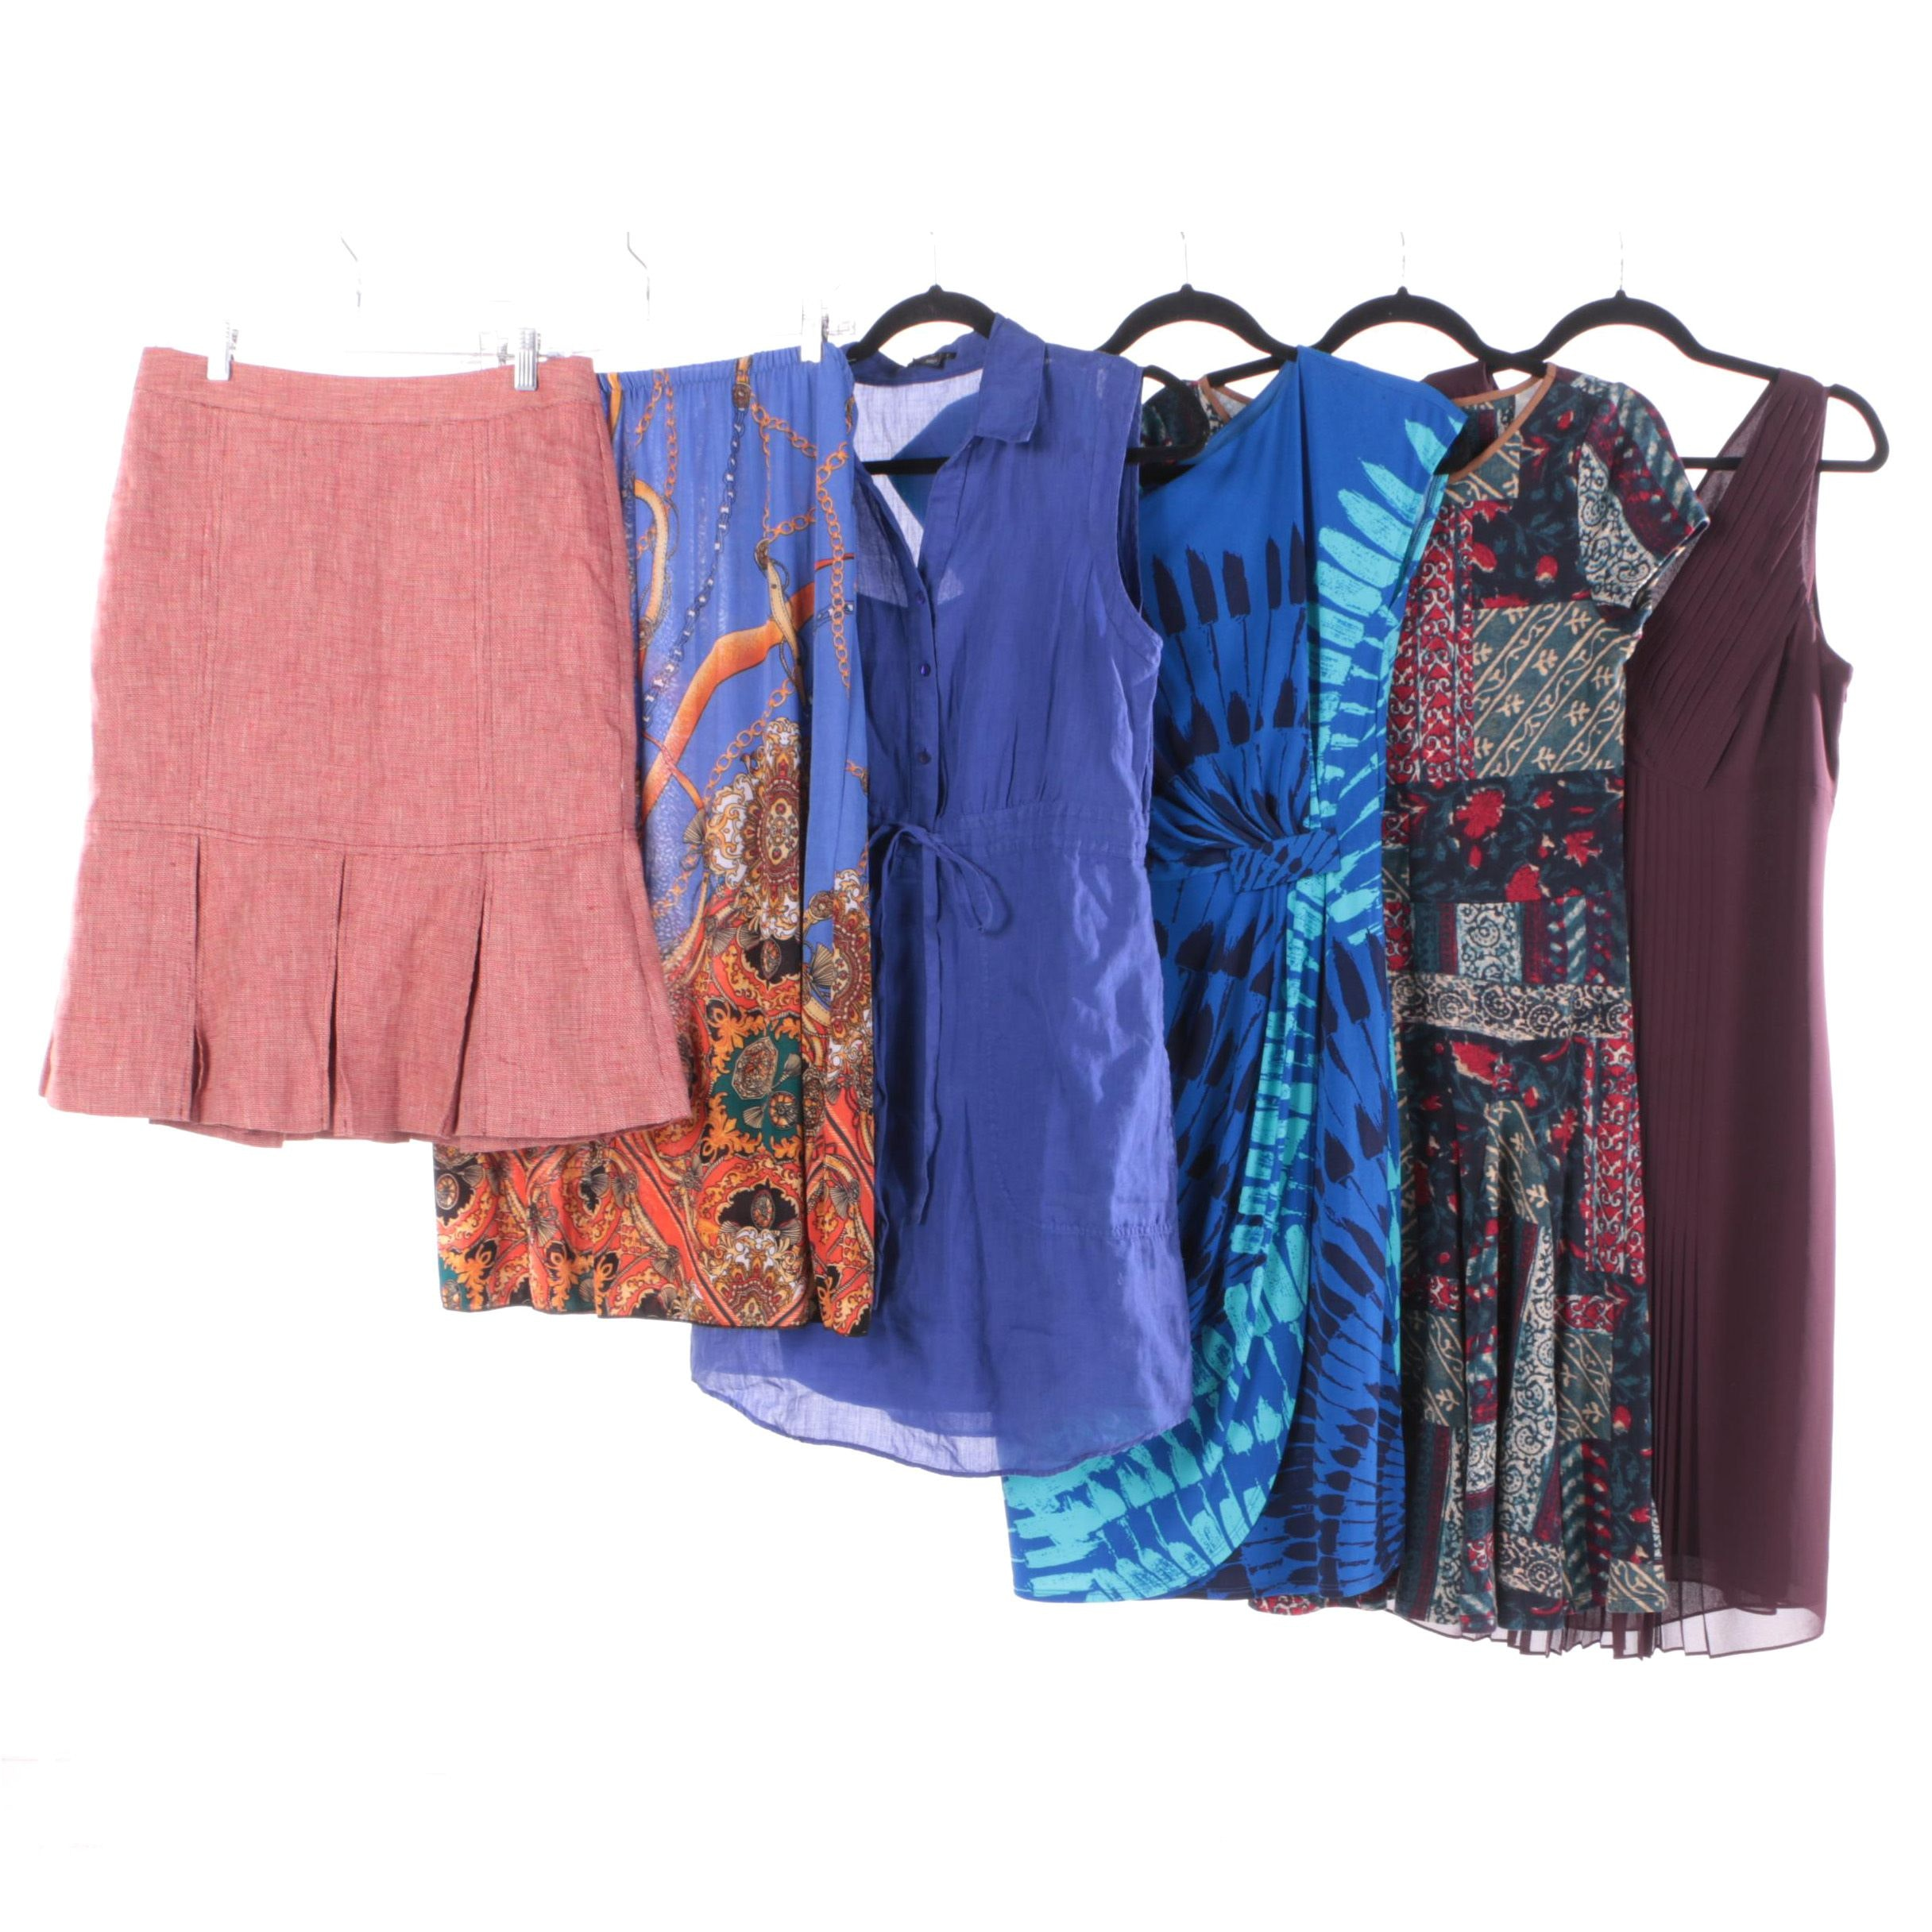 Women's Dresses and Skirts Including Lauren by Ralph Lauren, Theory and H&M